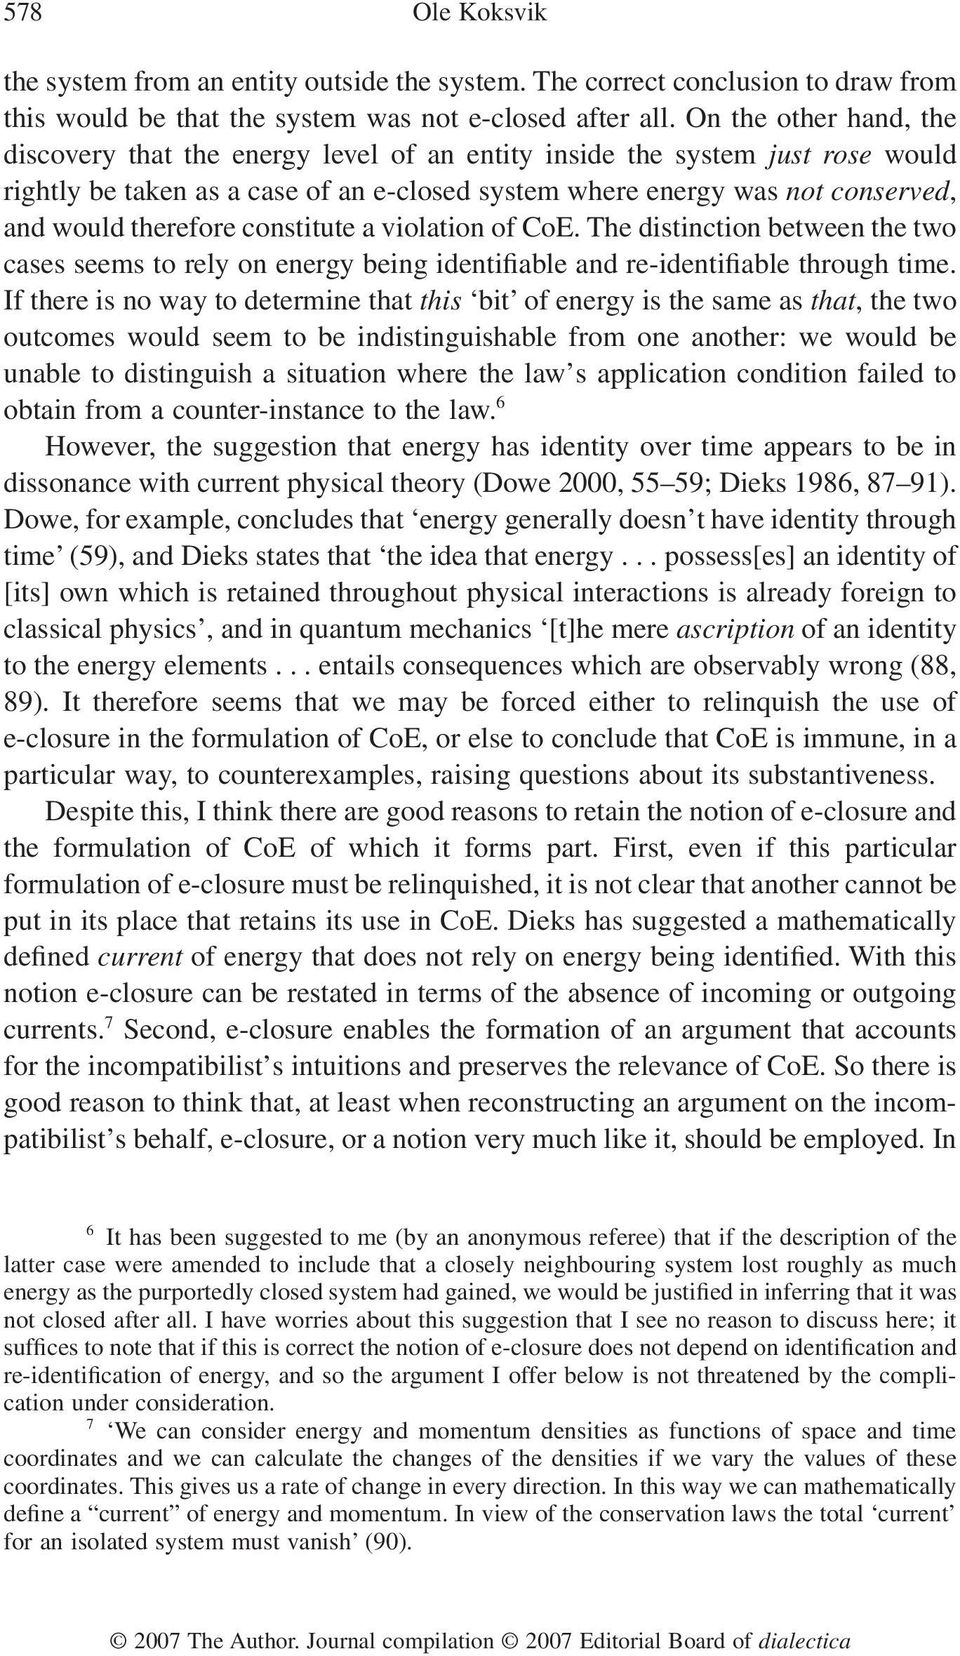 therefore constitute a violation of CoE. The distinction between the two cases seems to rely on energy being identifiable and re-identifiable through time.